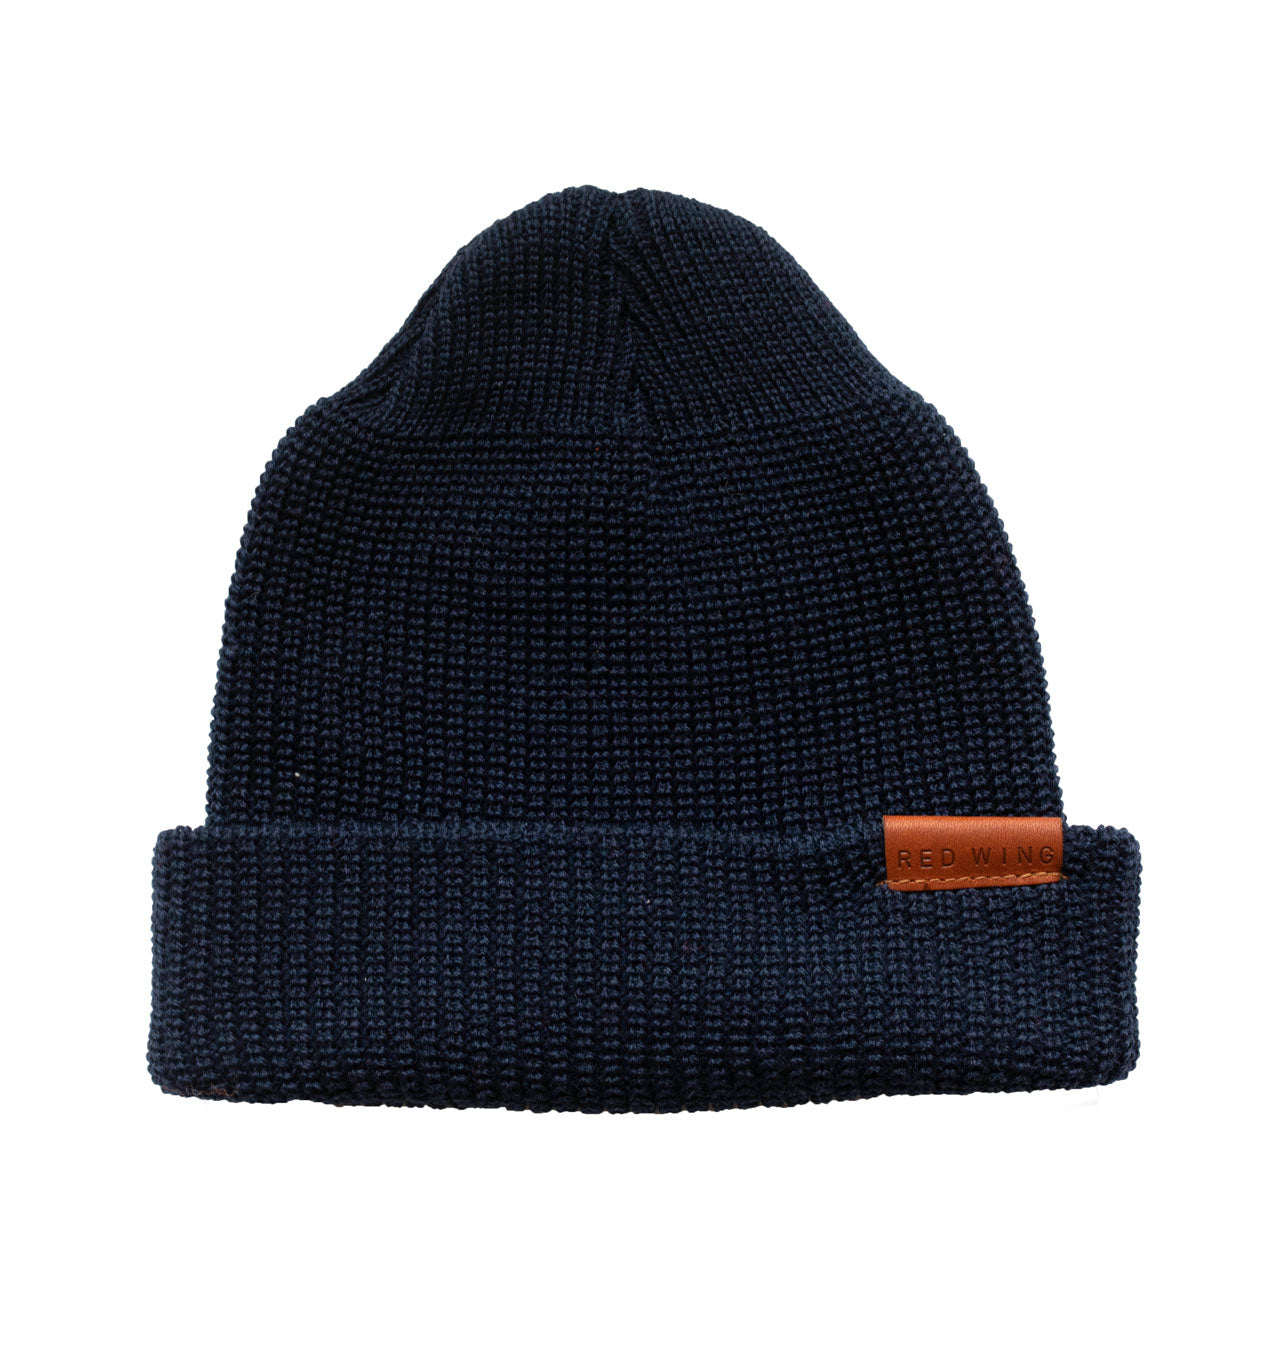 Red Wing Merino Wool Hat